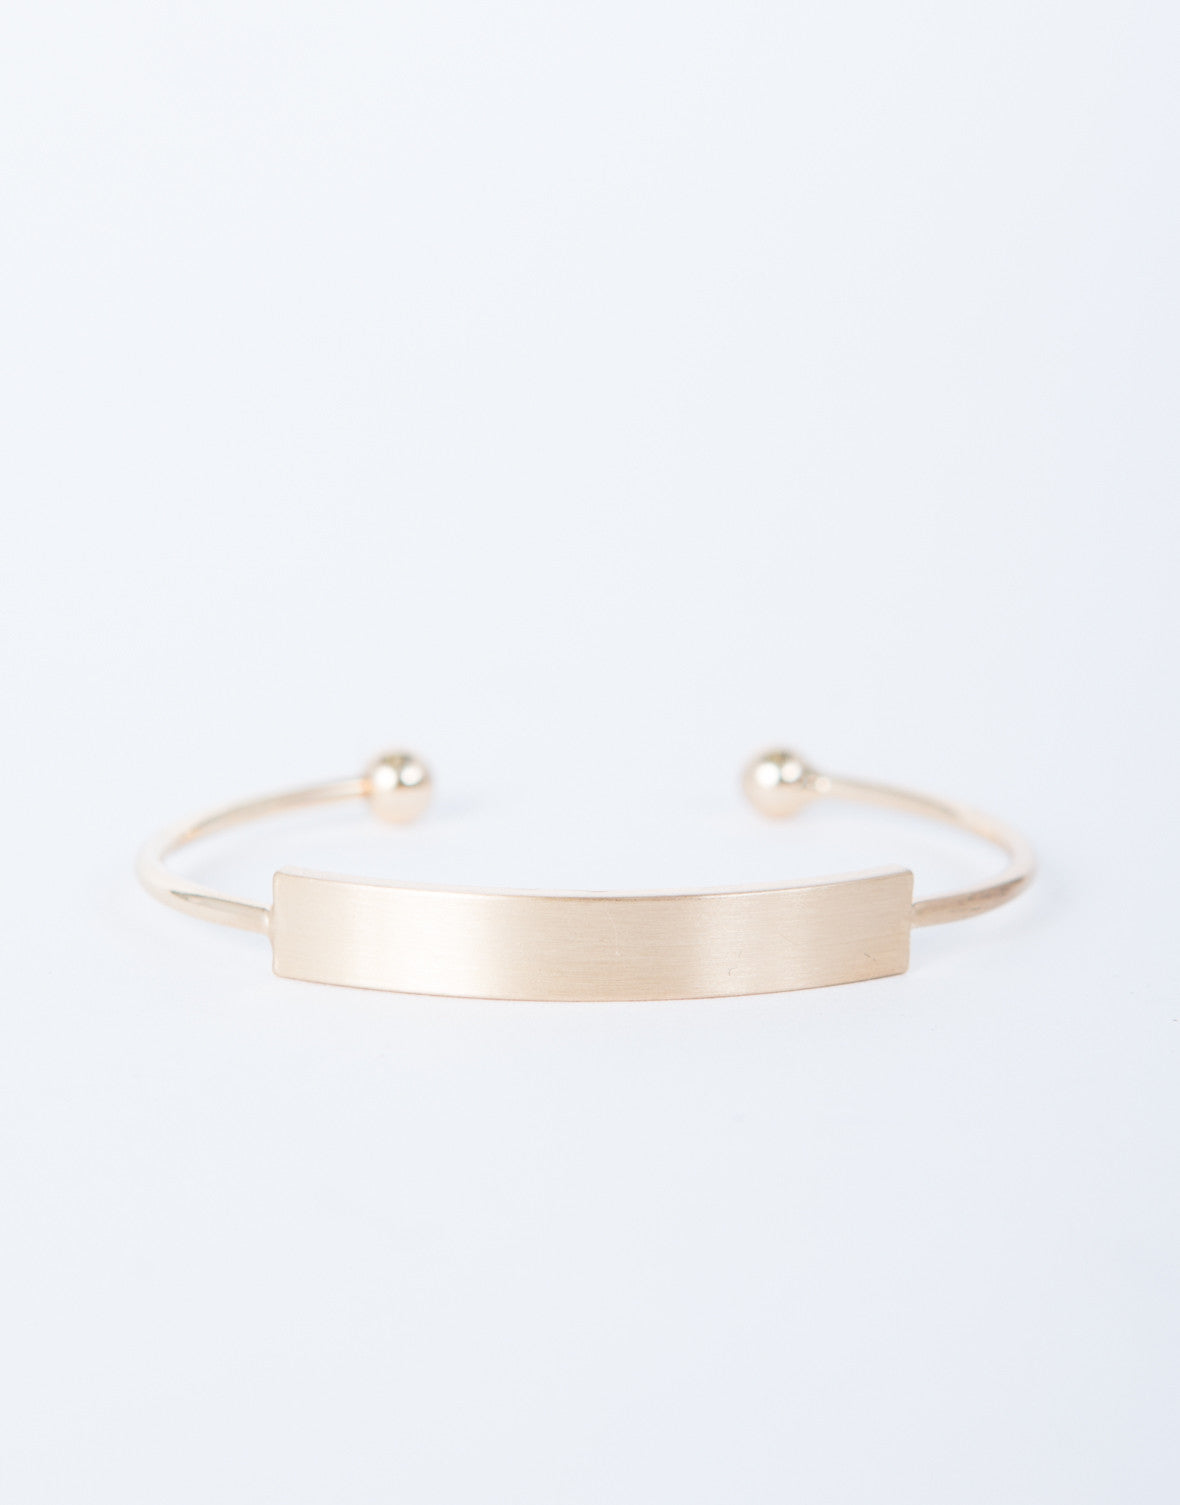 Golden Bar Cuff Bracelet